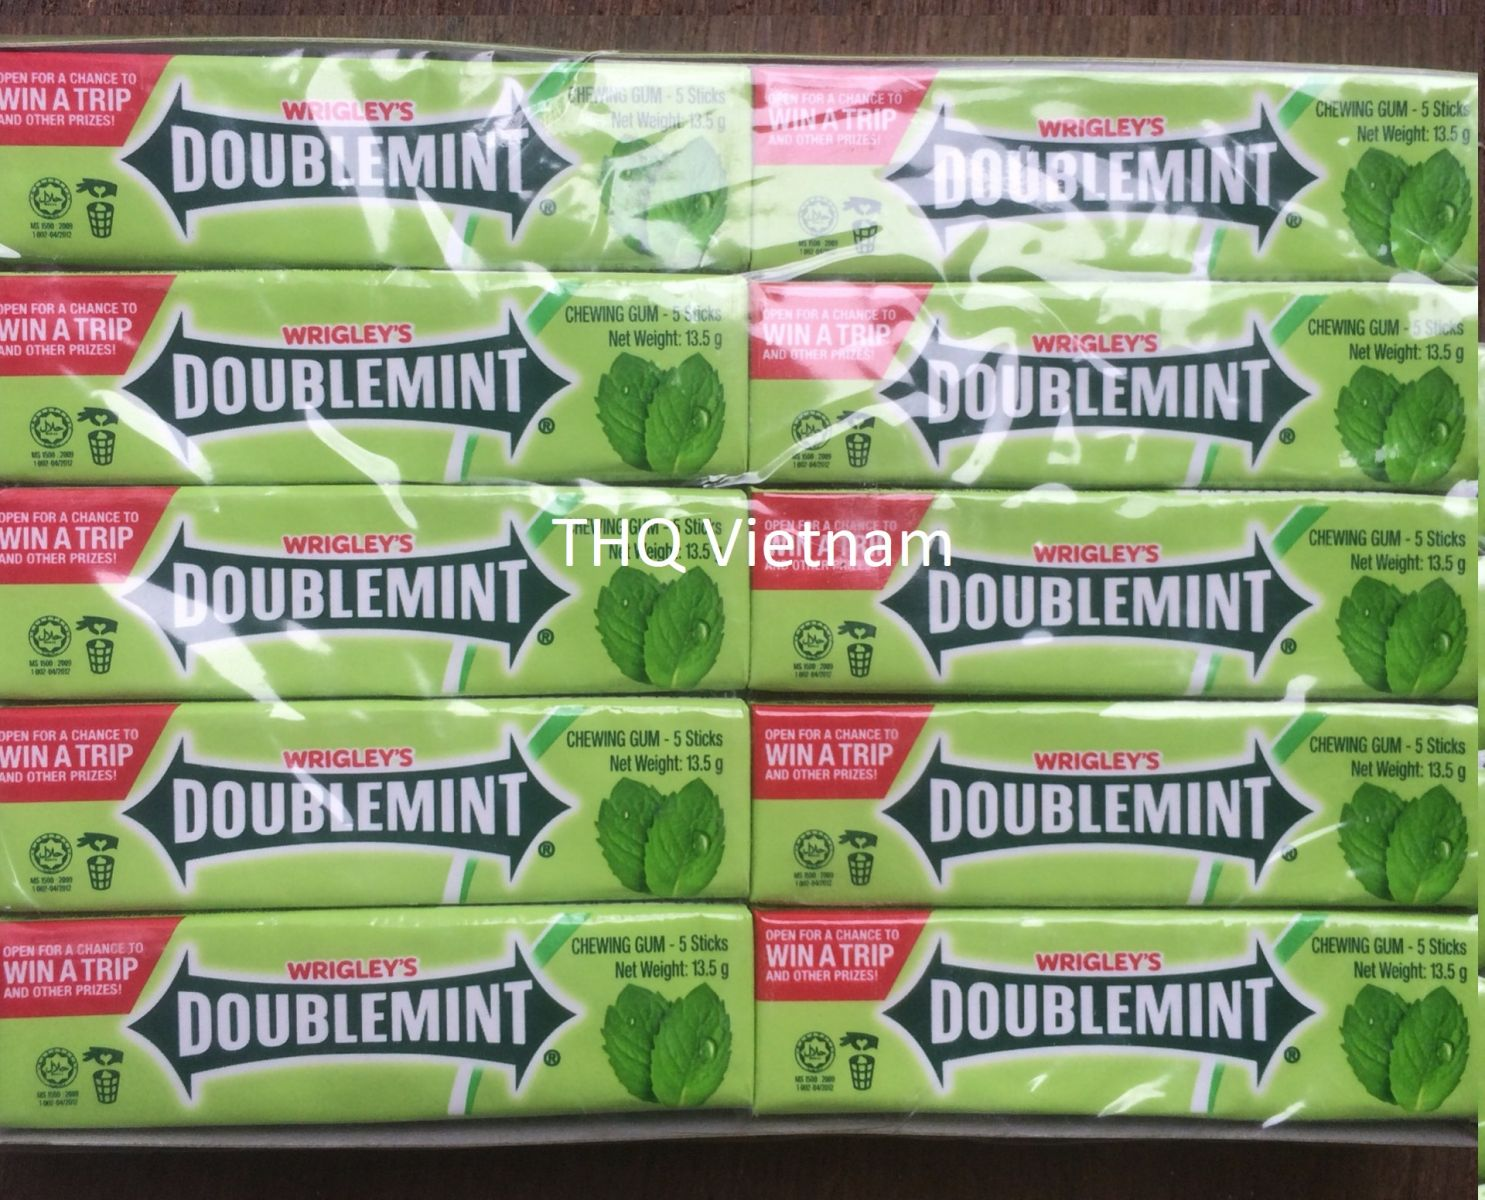 Wrigley's Doublemint Chewing Gum 13.5gr